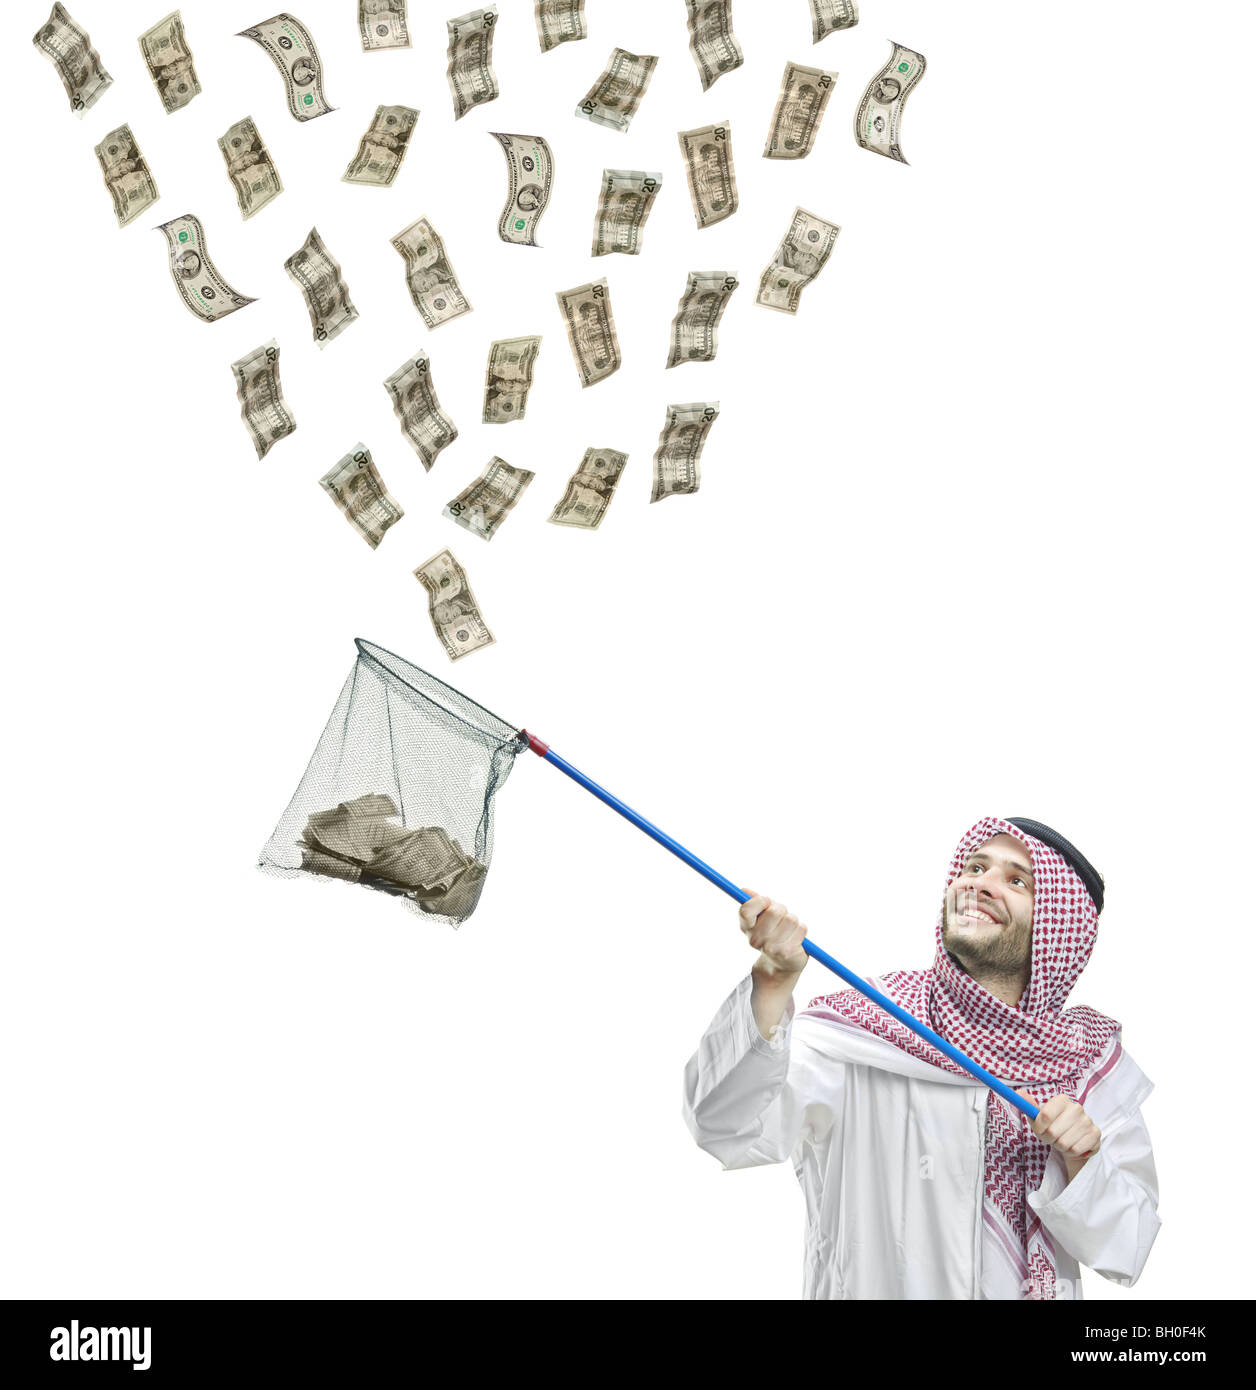 arab person collecting money with a butterfly net isolated on white